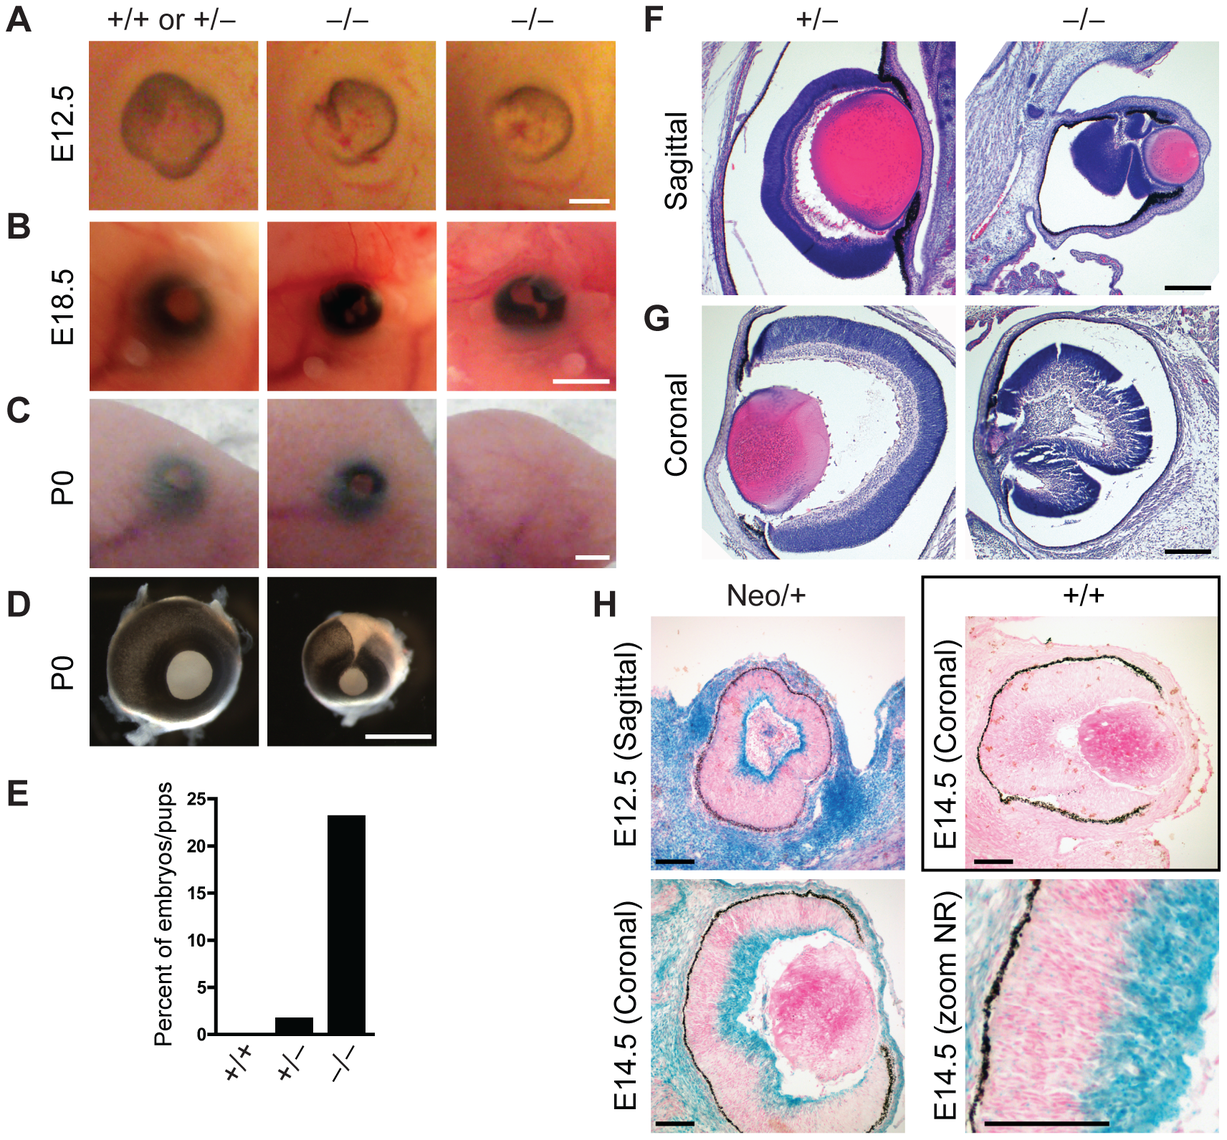 Defects in eye development in Jarid1b knockout embryos.